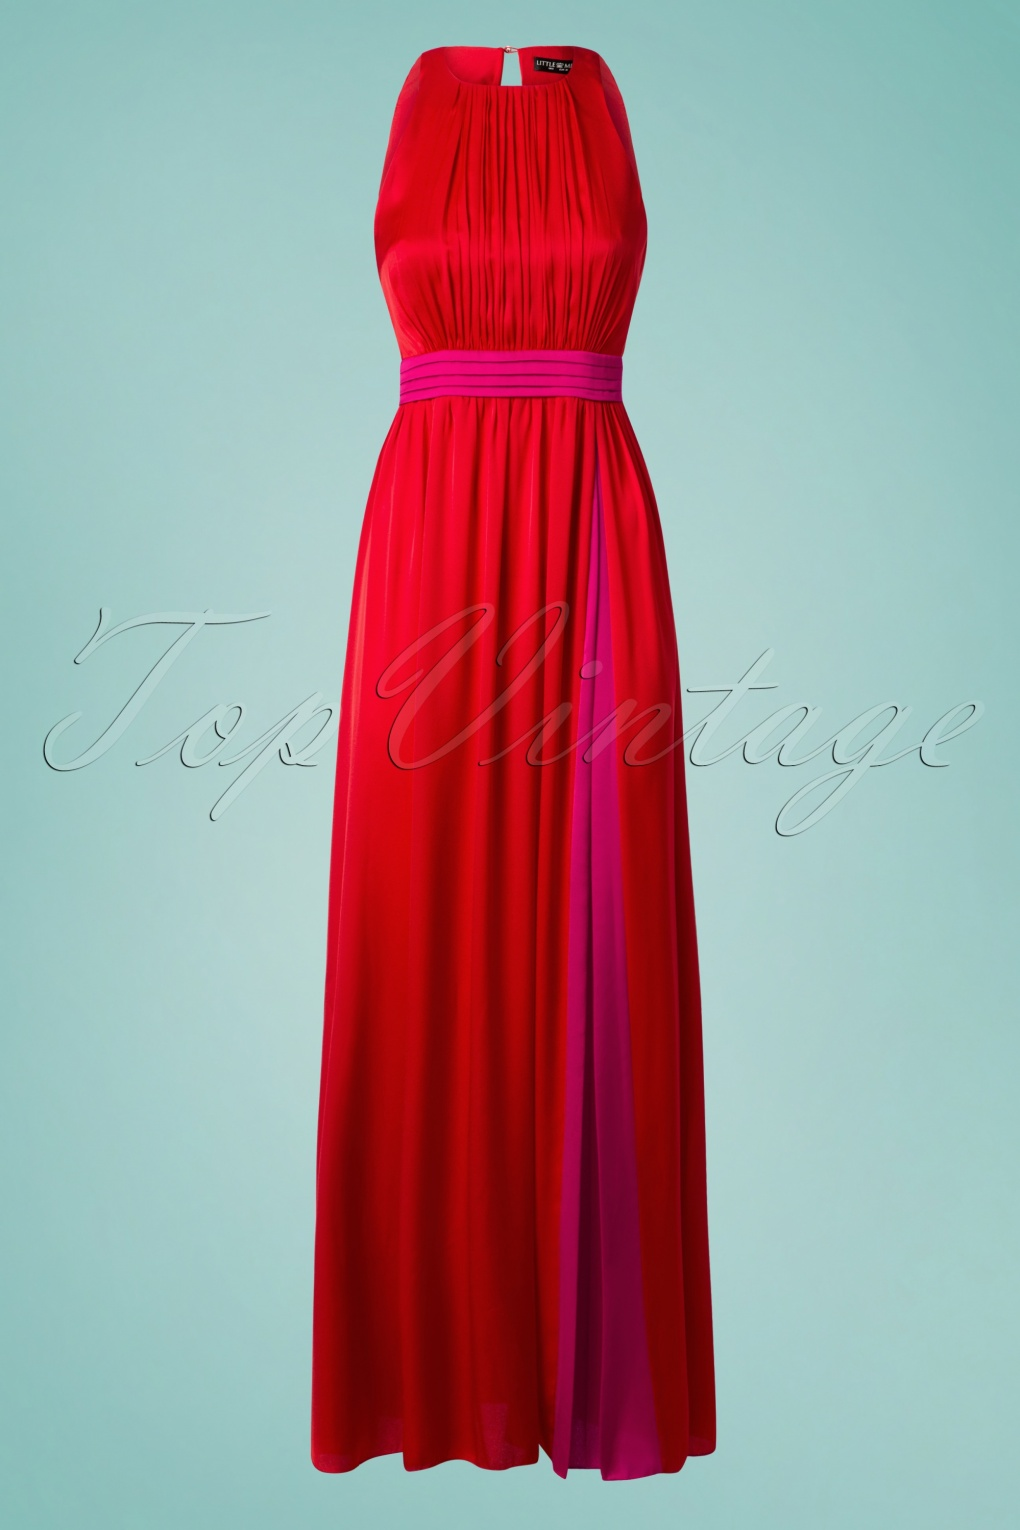 50s Charlotte Satin Maxi Dress in Red and Pink